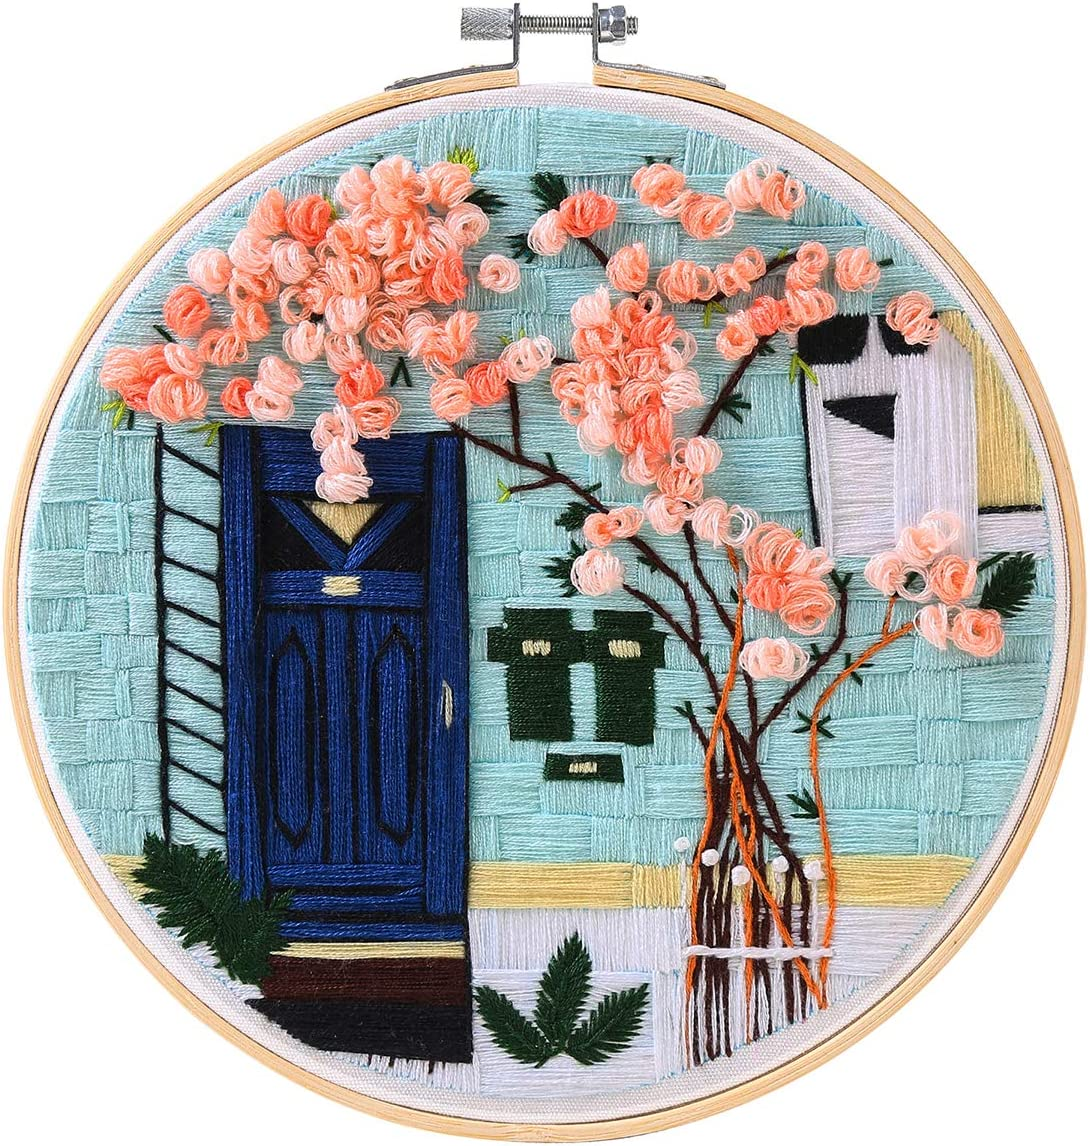 MEIAN Embroidery Kit for Adults It is very popular Stamped Flower Fort Worth Mall C Beginners with